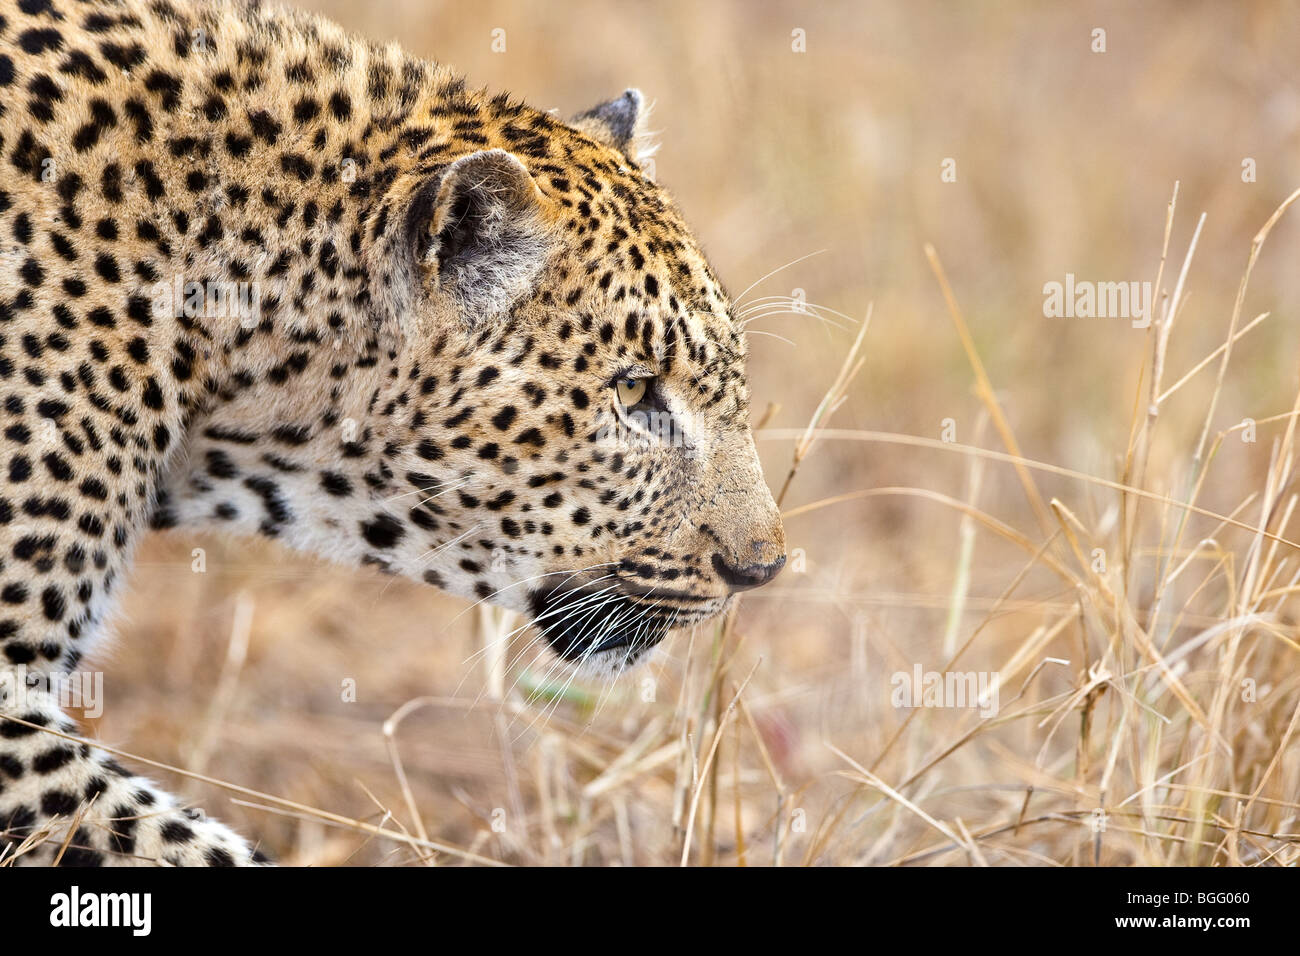 Leopard head close-up - Stock Image